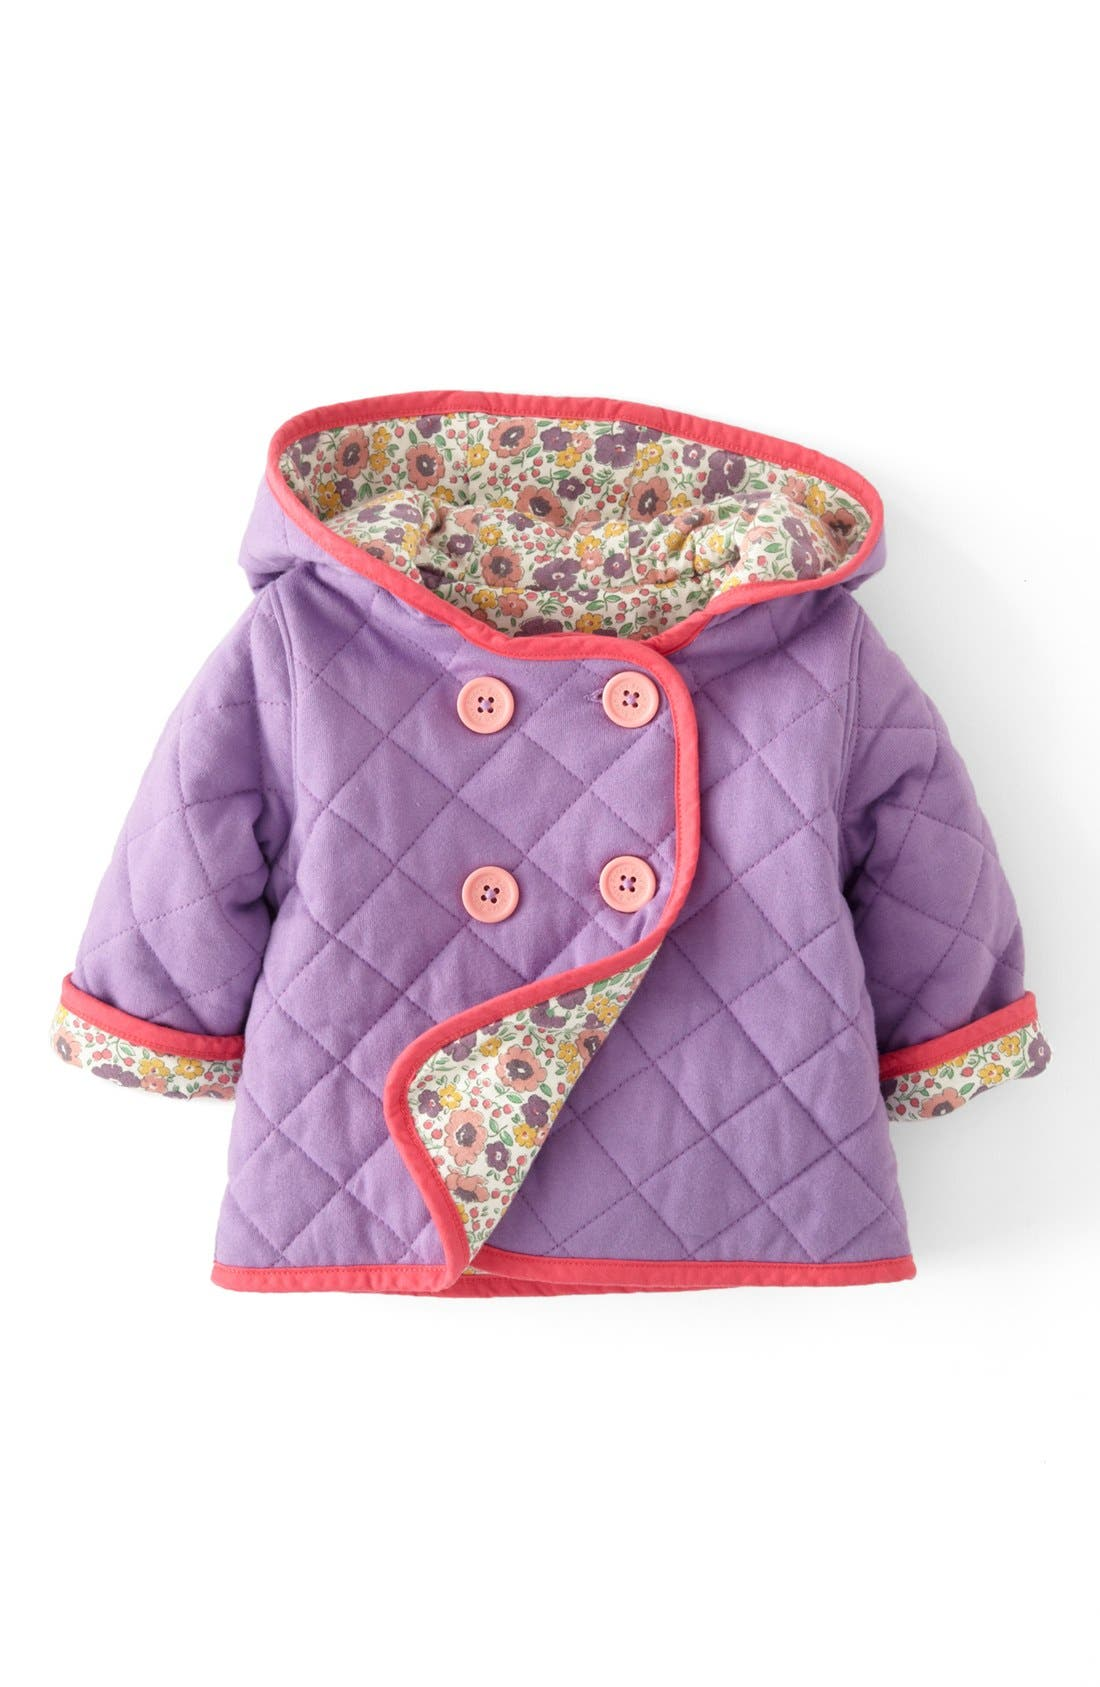 Alternate Image 1 Selected - Mini Boden Quilted Jersey Jacket (Baby Girls)